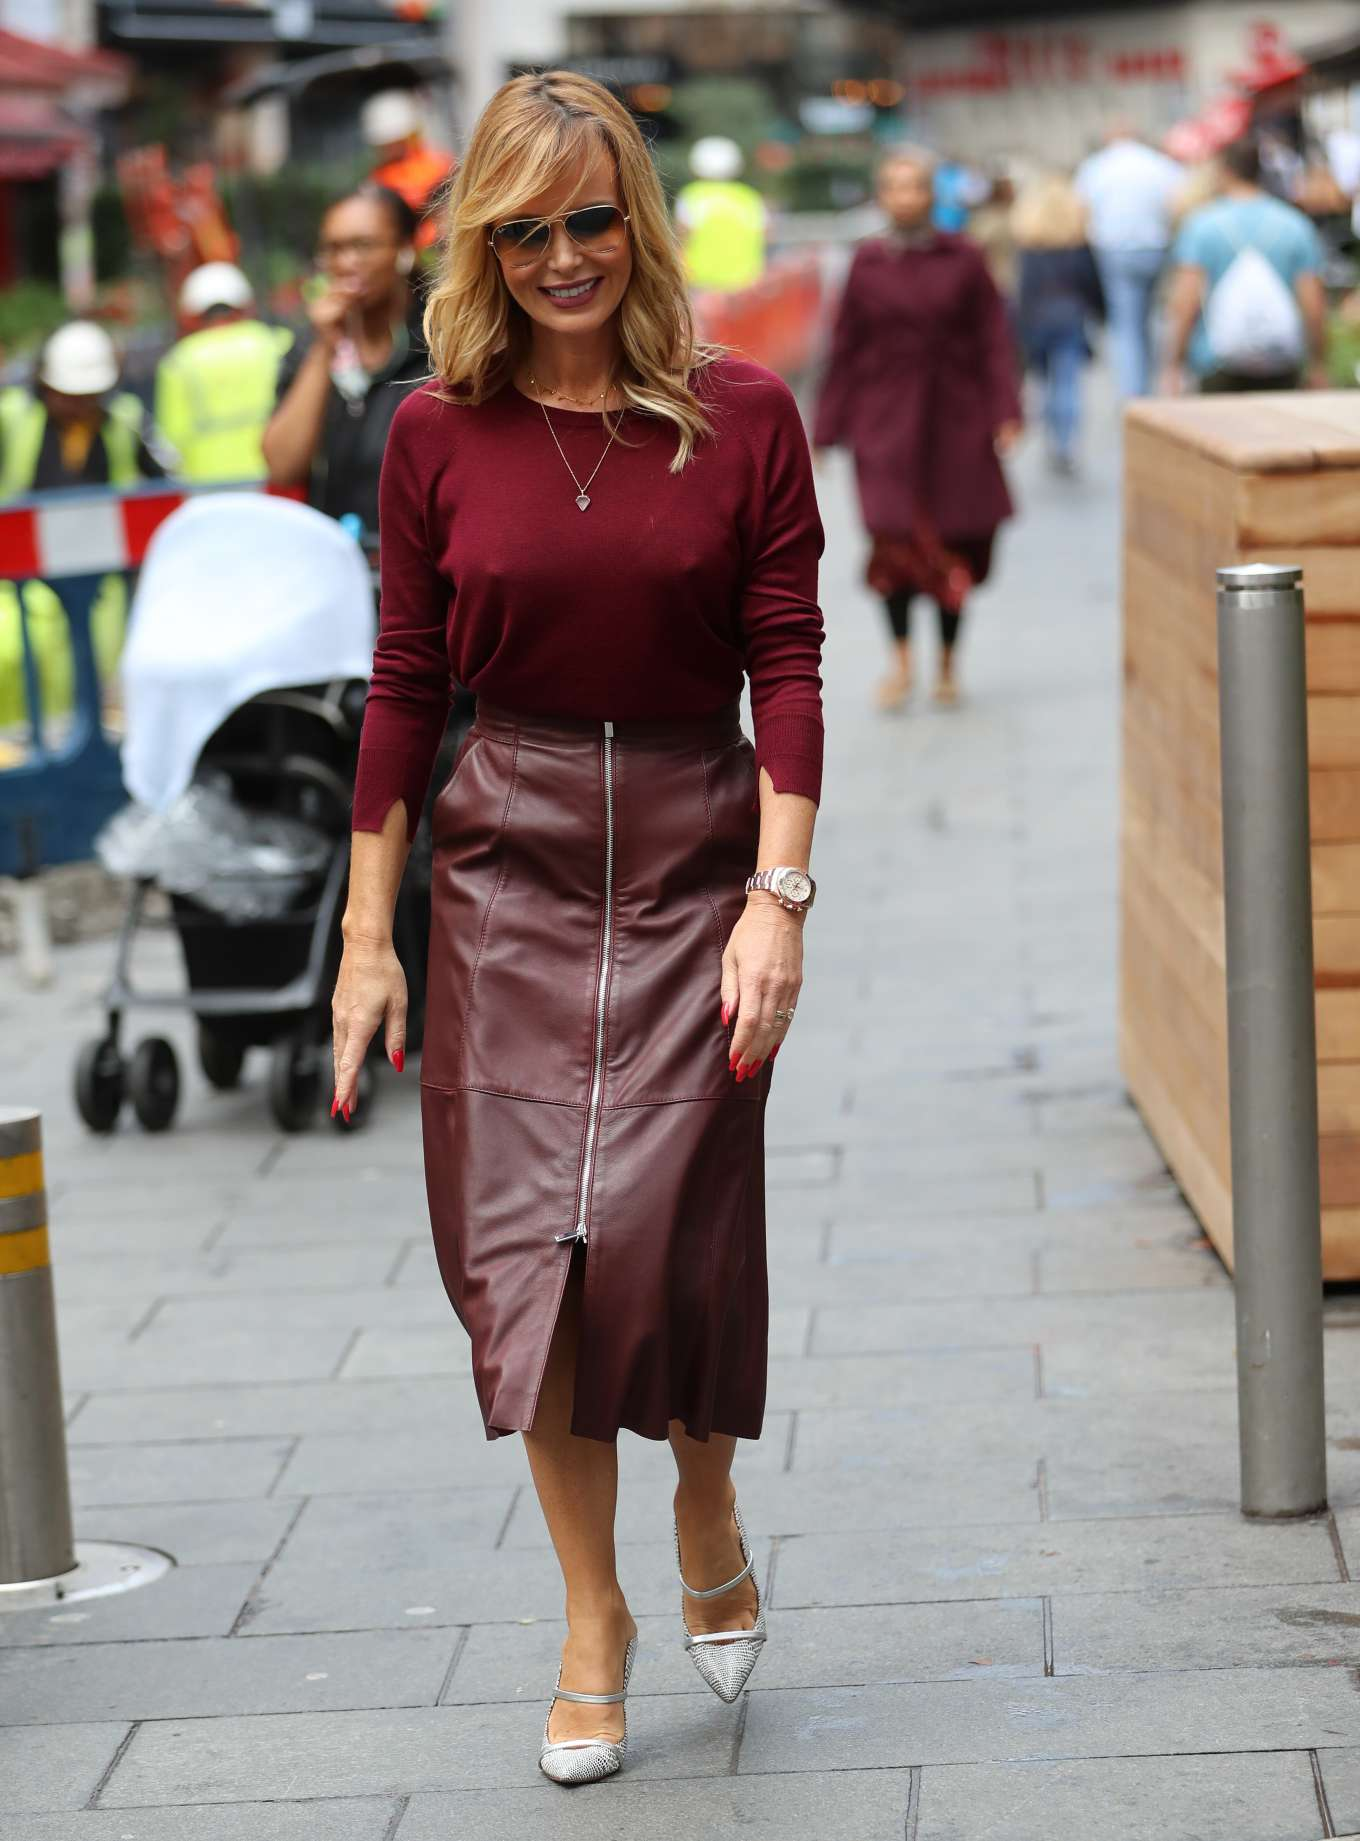 Amanda Holden in Leather Skirt - Arrives at Heart Radio in London